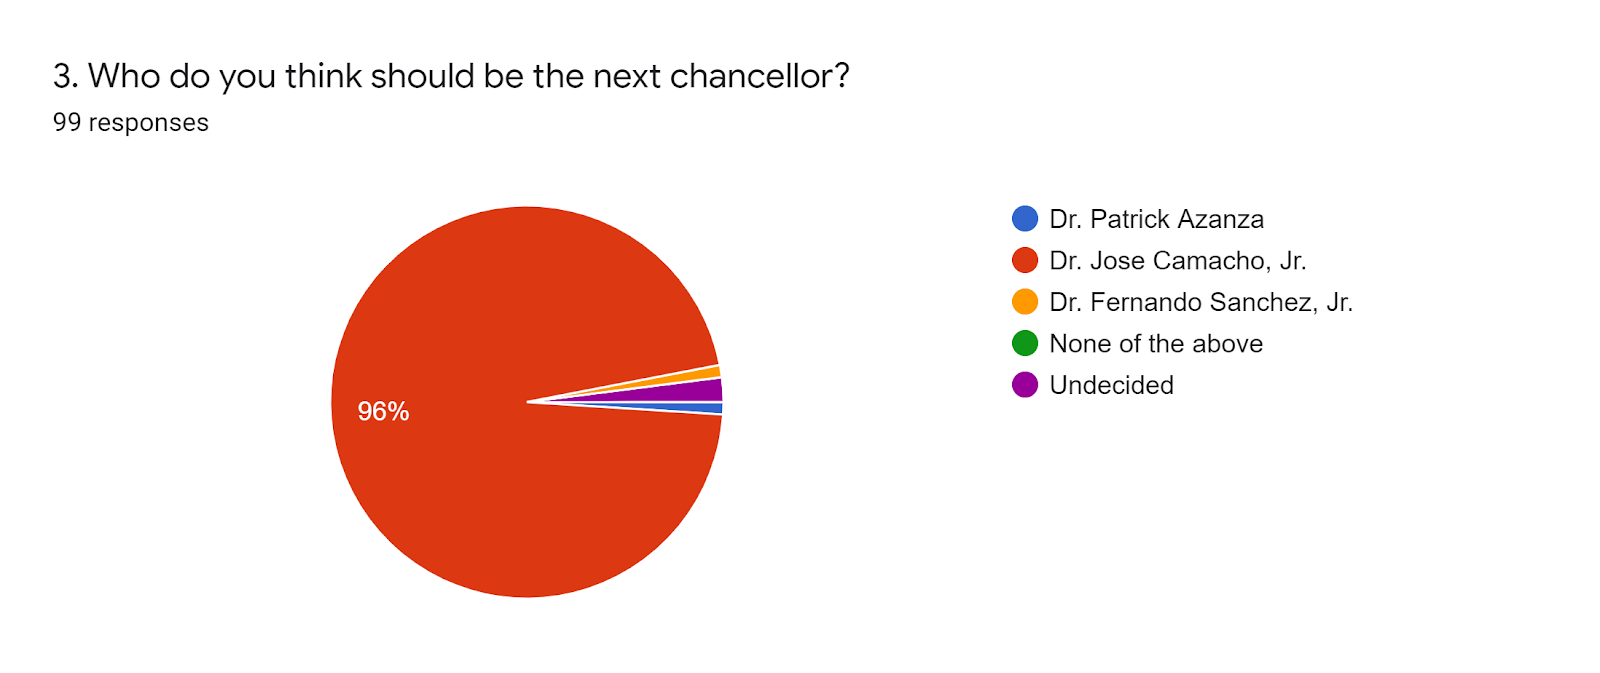 Forms response chart. Question title: 3. Who do you think should be the next chancellor?. Number of responses: 99 responses.